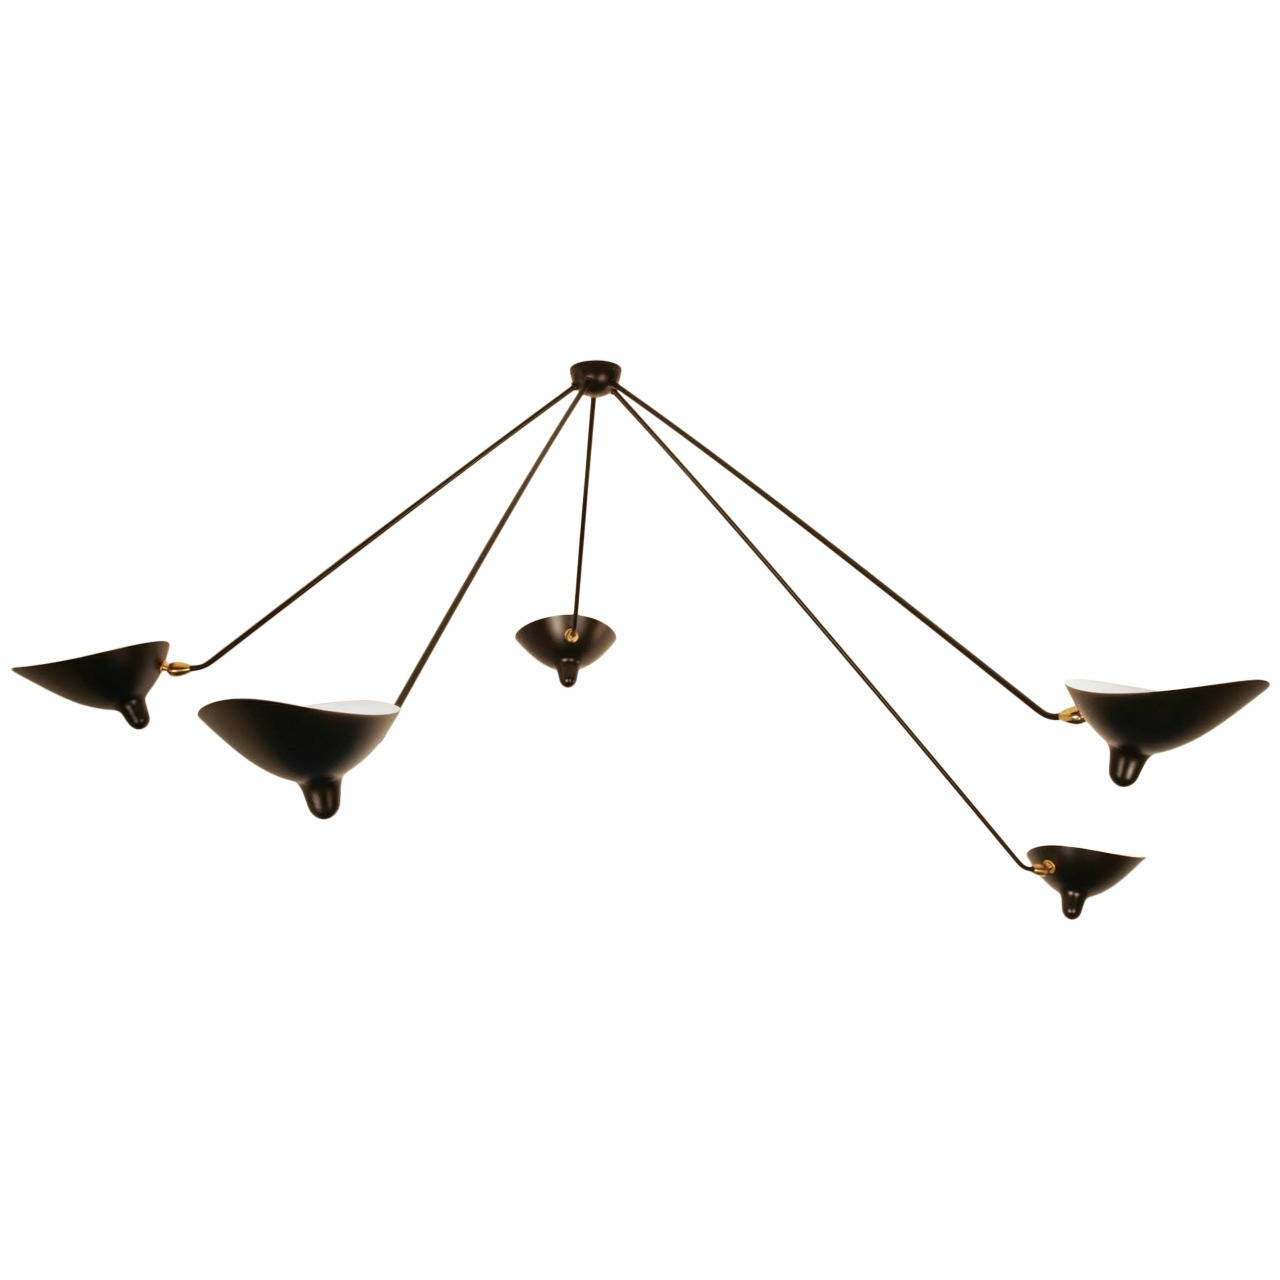 Serge Mouille Spider Ceiling Lamp with Five Arms For Sale - Serge Mouille Spider Ceiling Lamp With Five Arms For Sale At 1stdibs